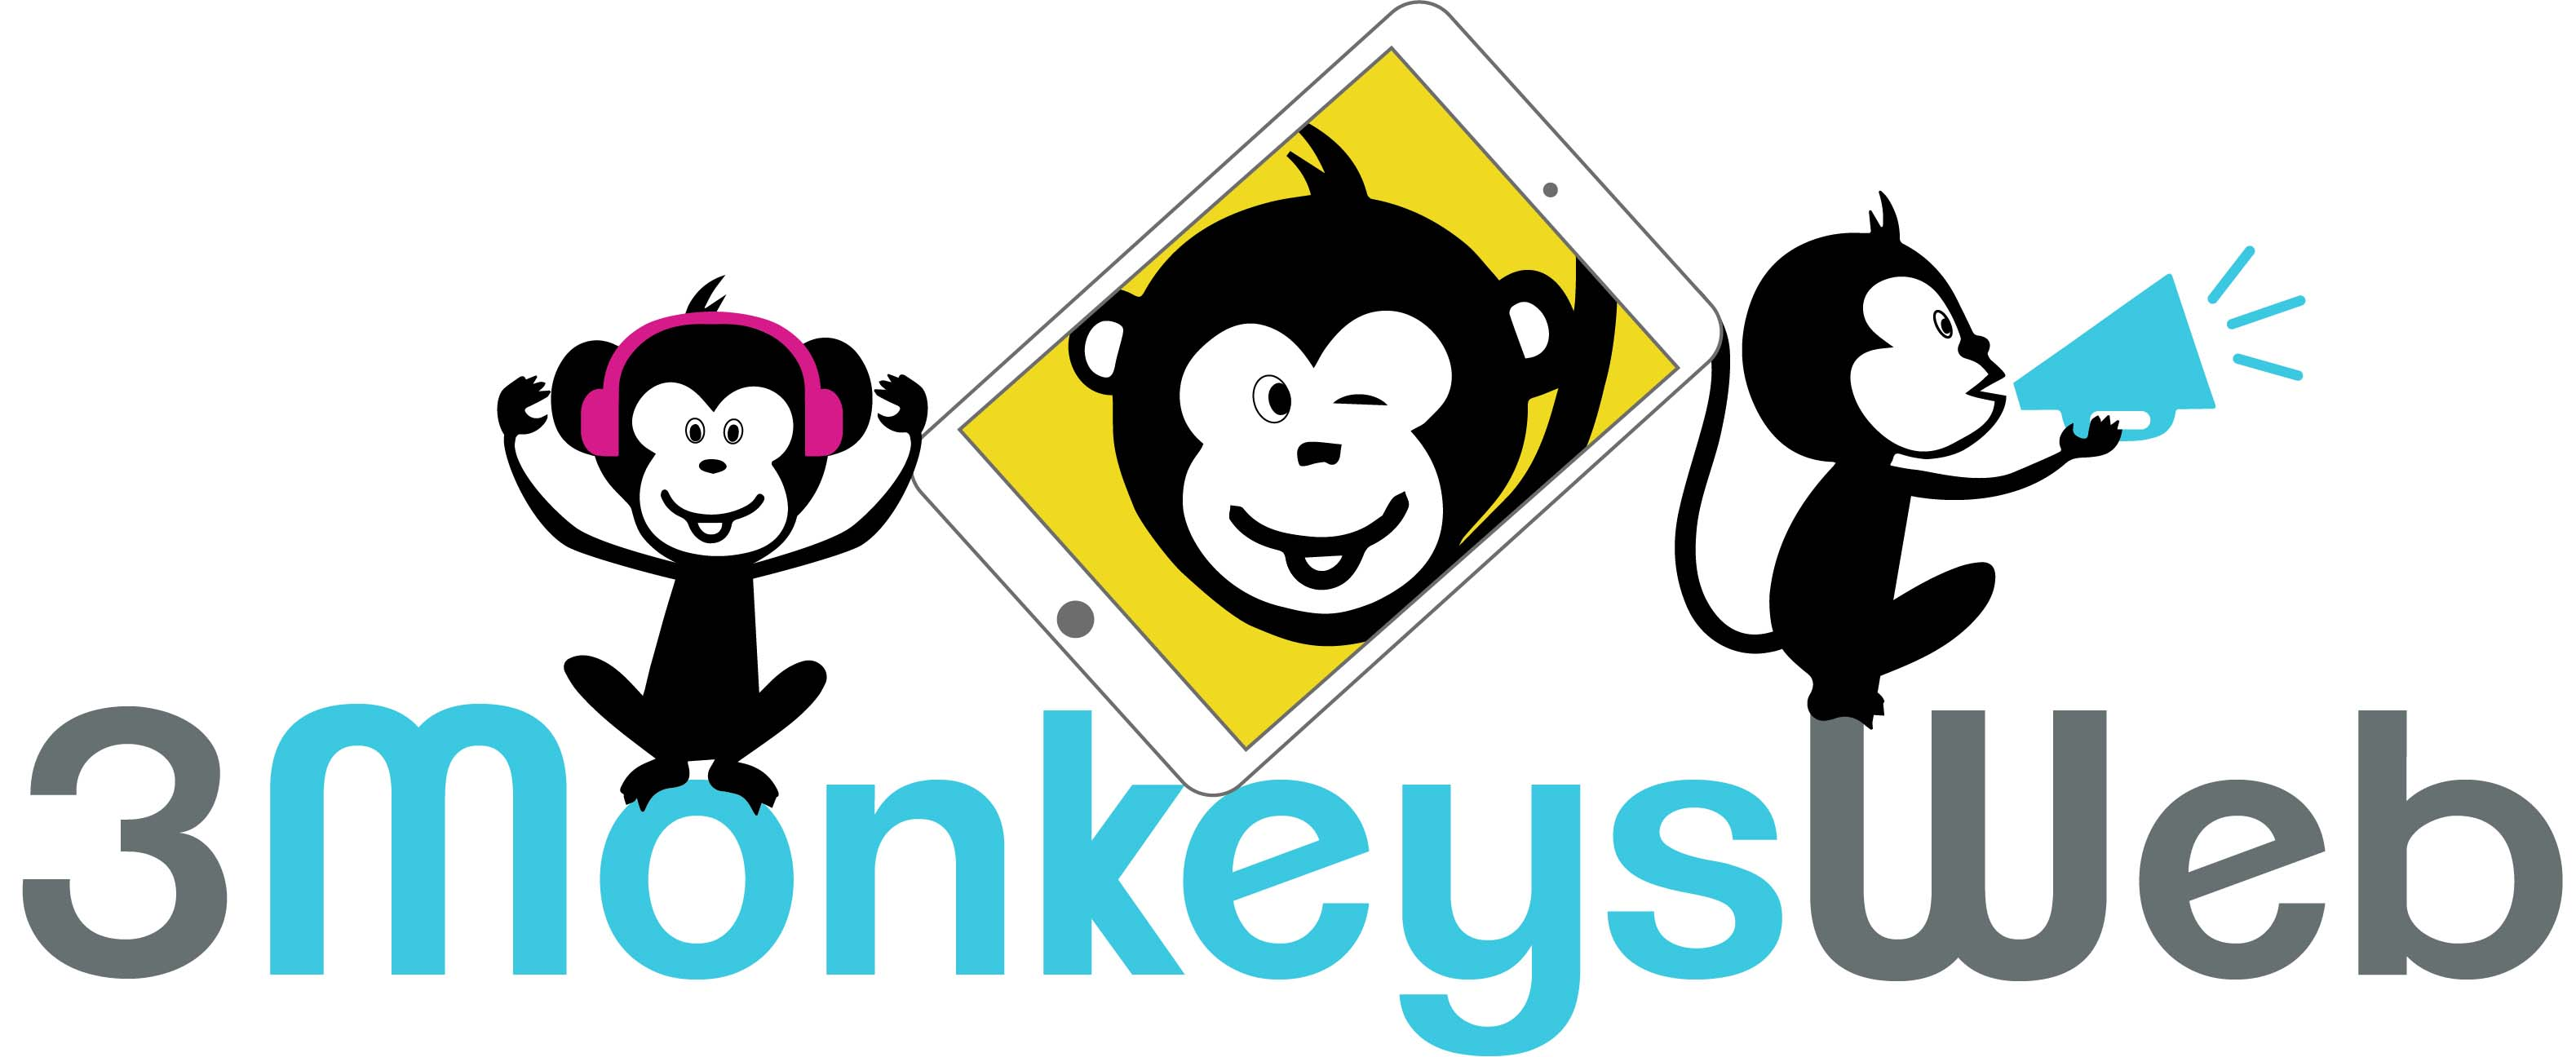 Three Monkeys Web